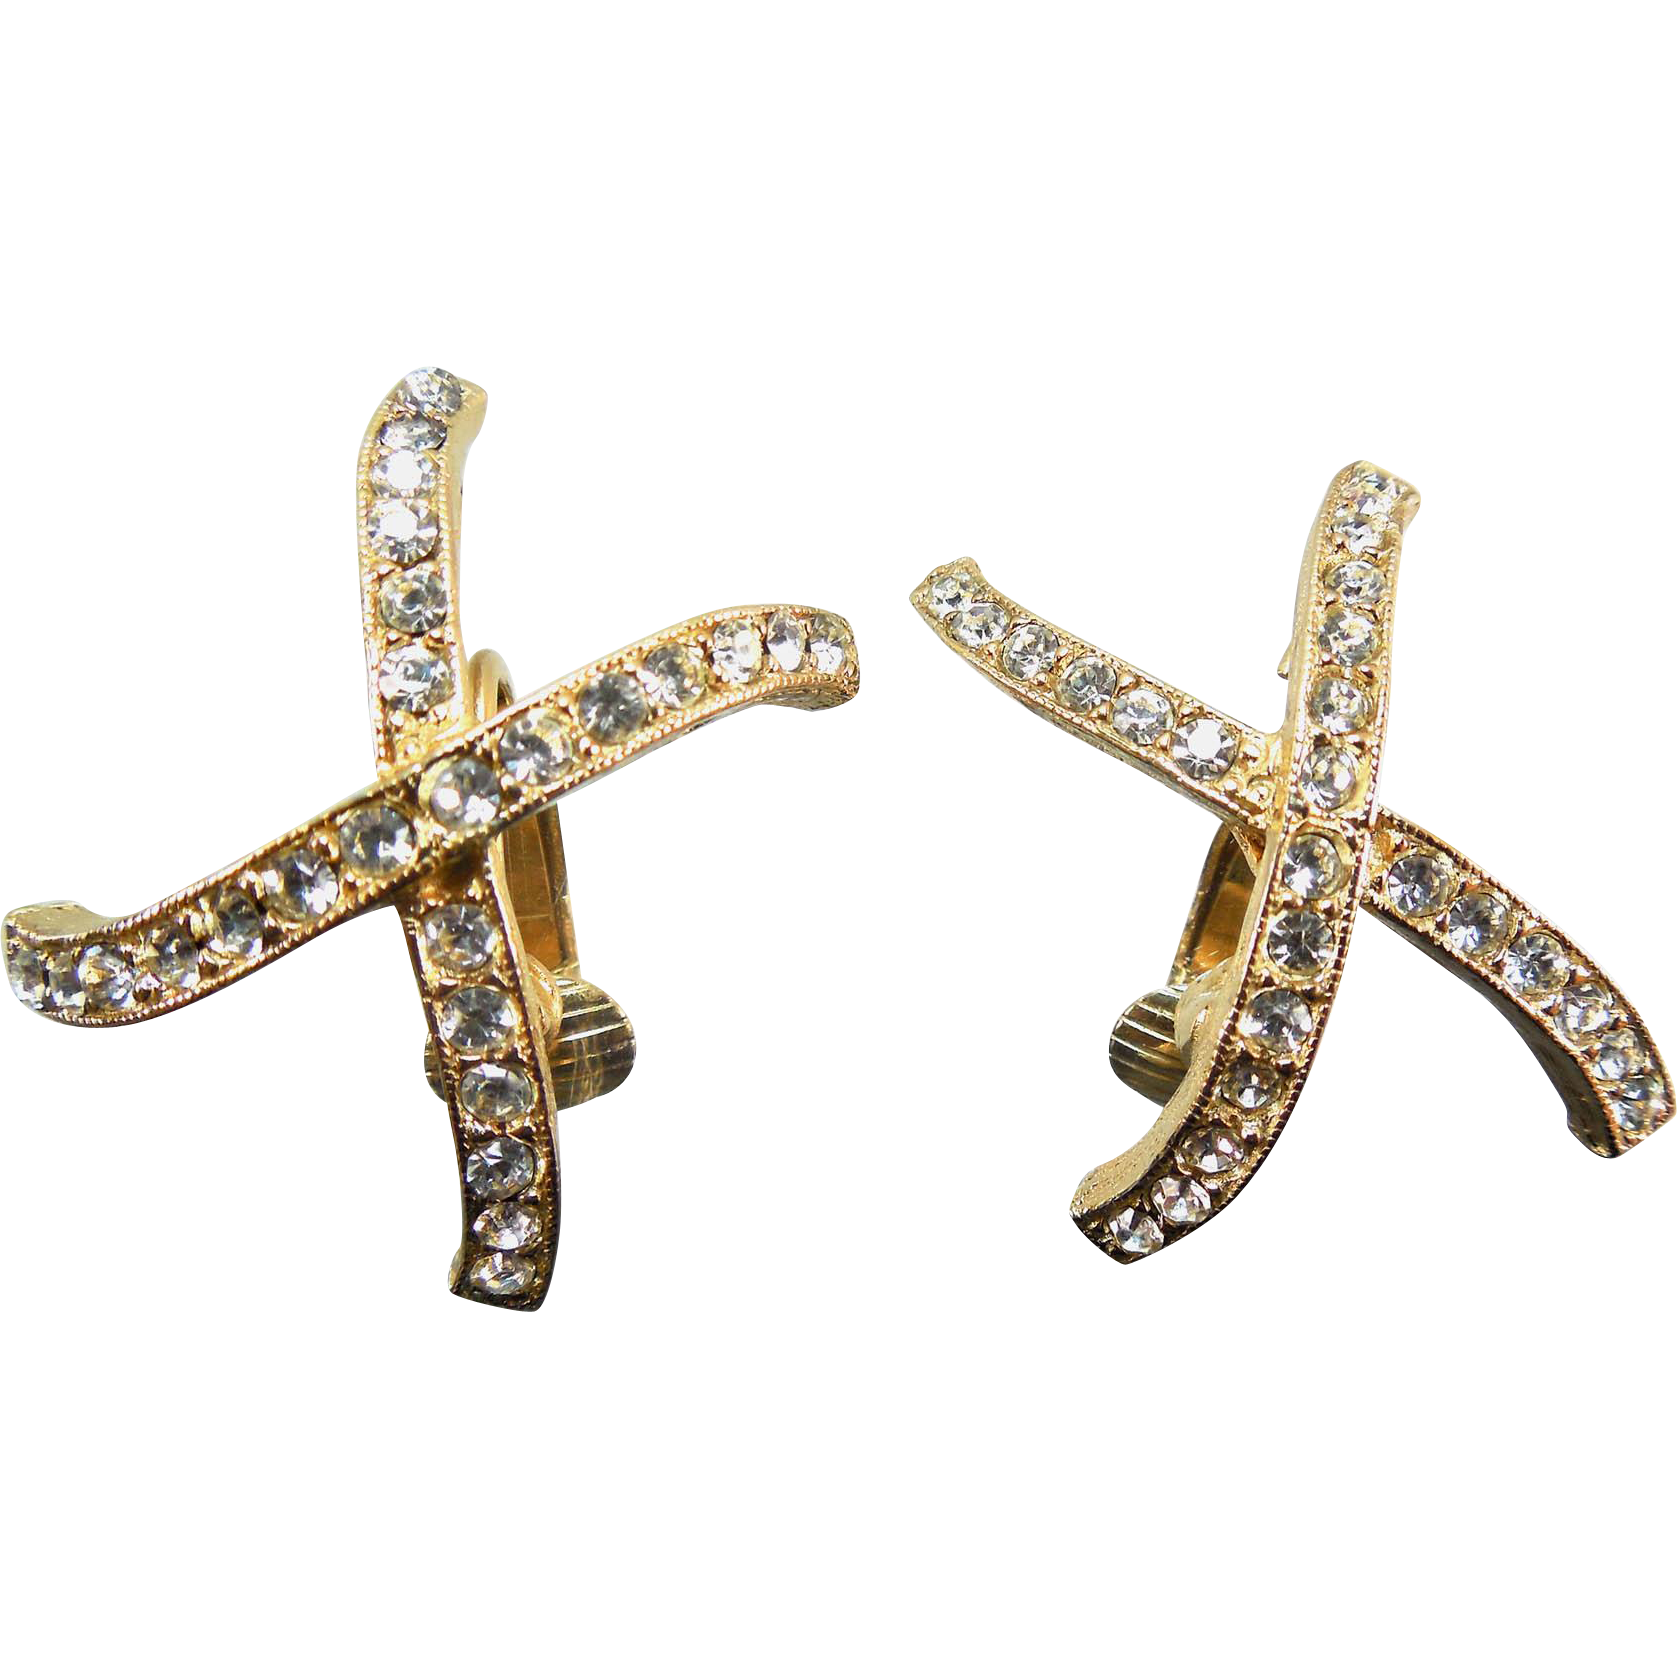 Vintage Kenneth Lane X or Cross Crystal Earrings That Clip On